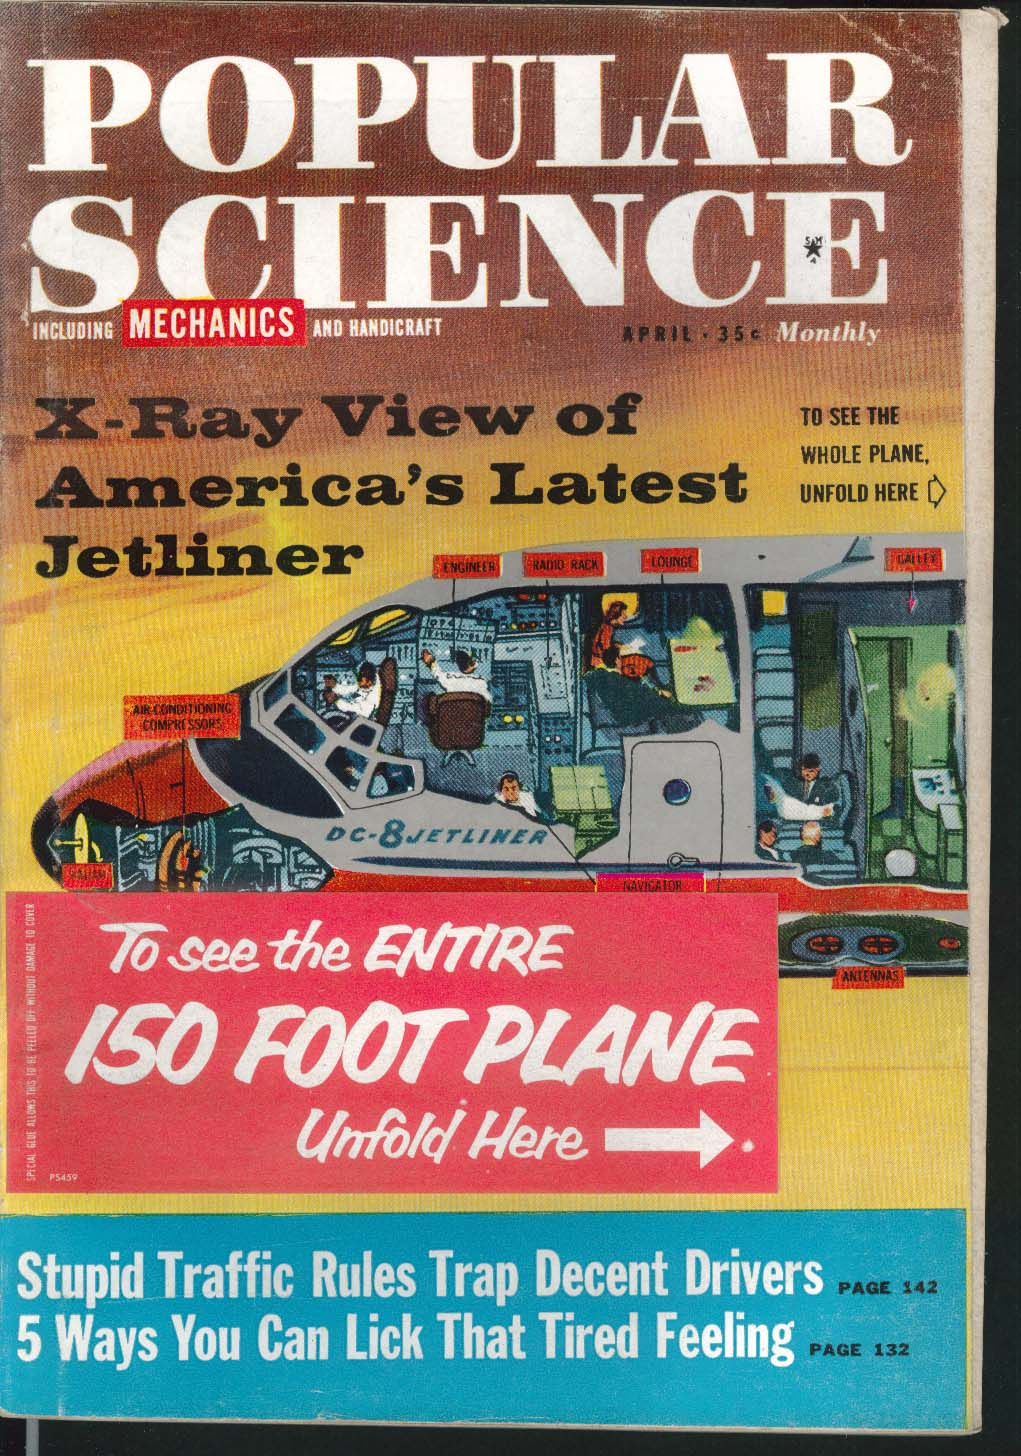 POPULAR SCIENCE Borgward Russian Cars Satellites DC-8 Nylon Rifles + 4 1959